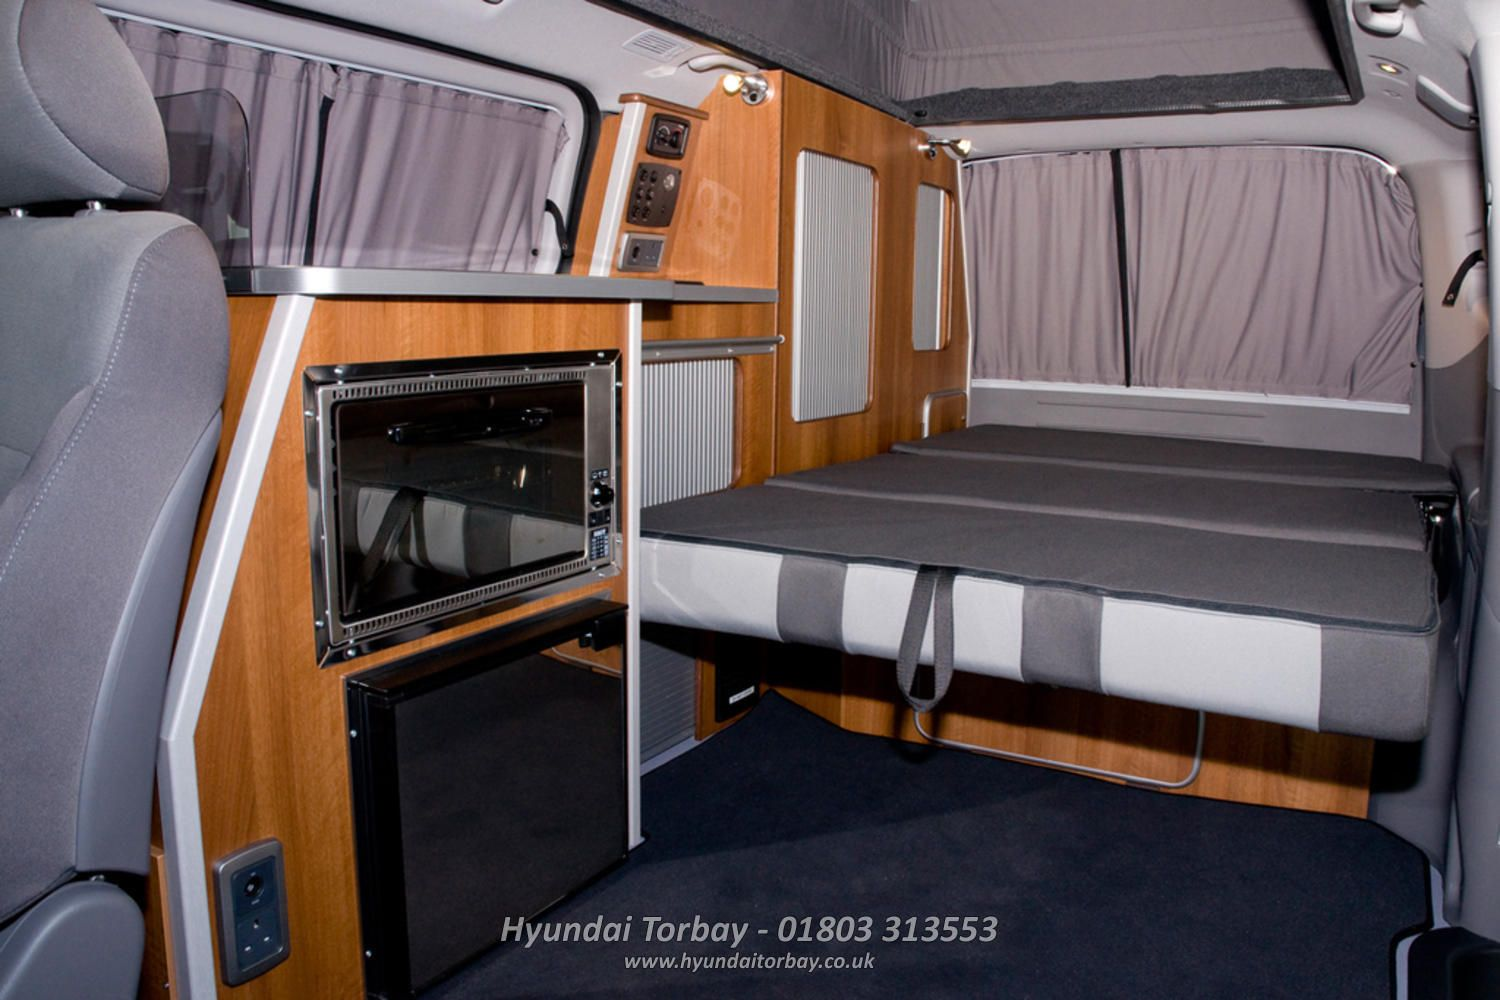 hyundai campers - Google Search  Camping for beginners, Rv